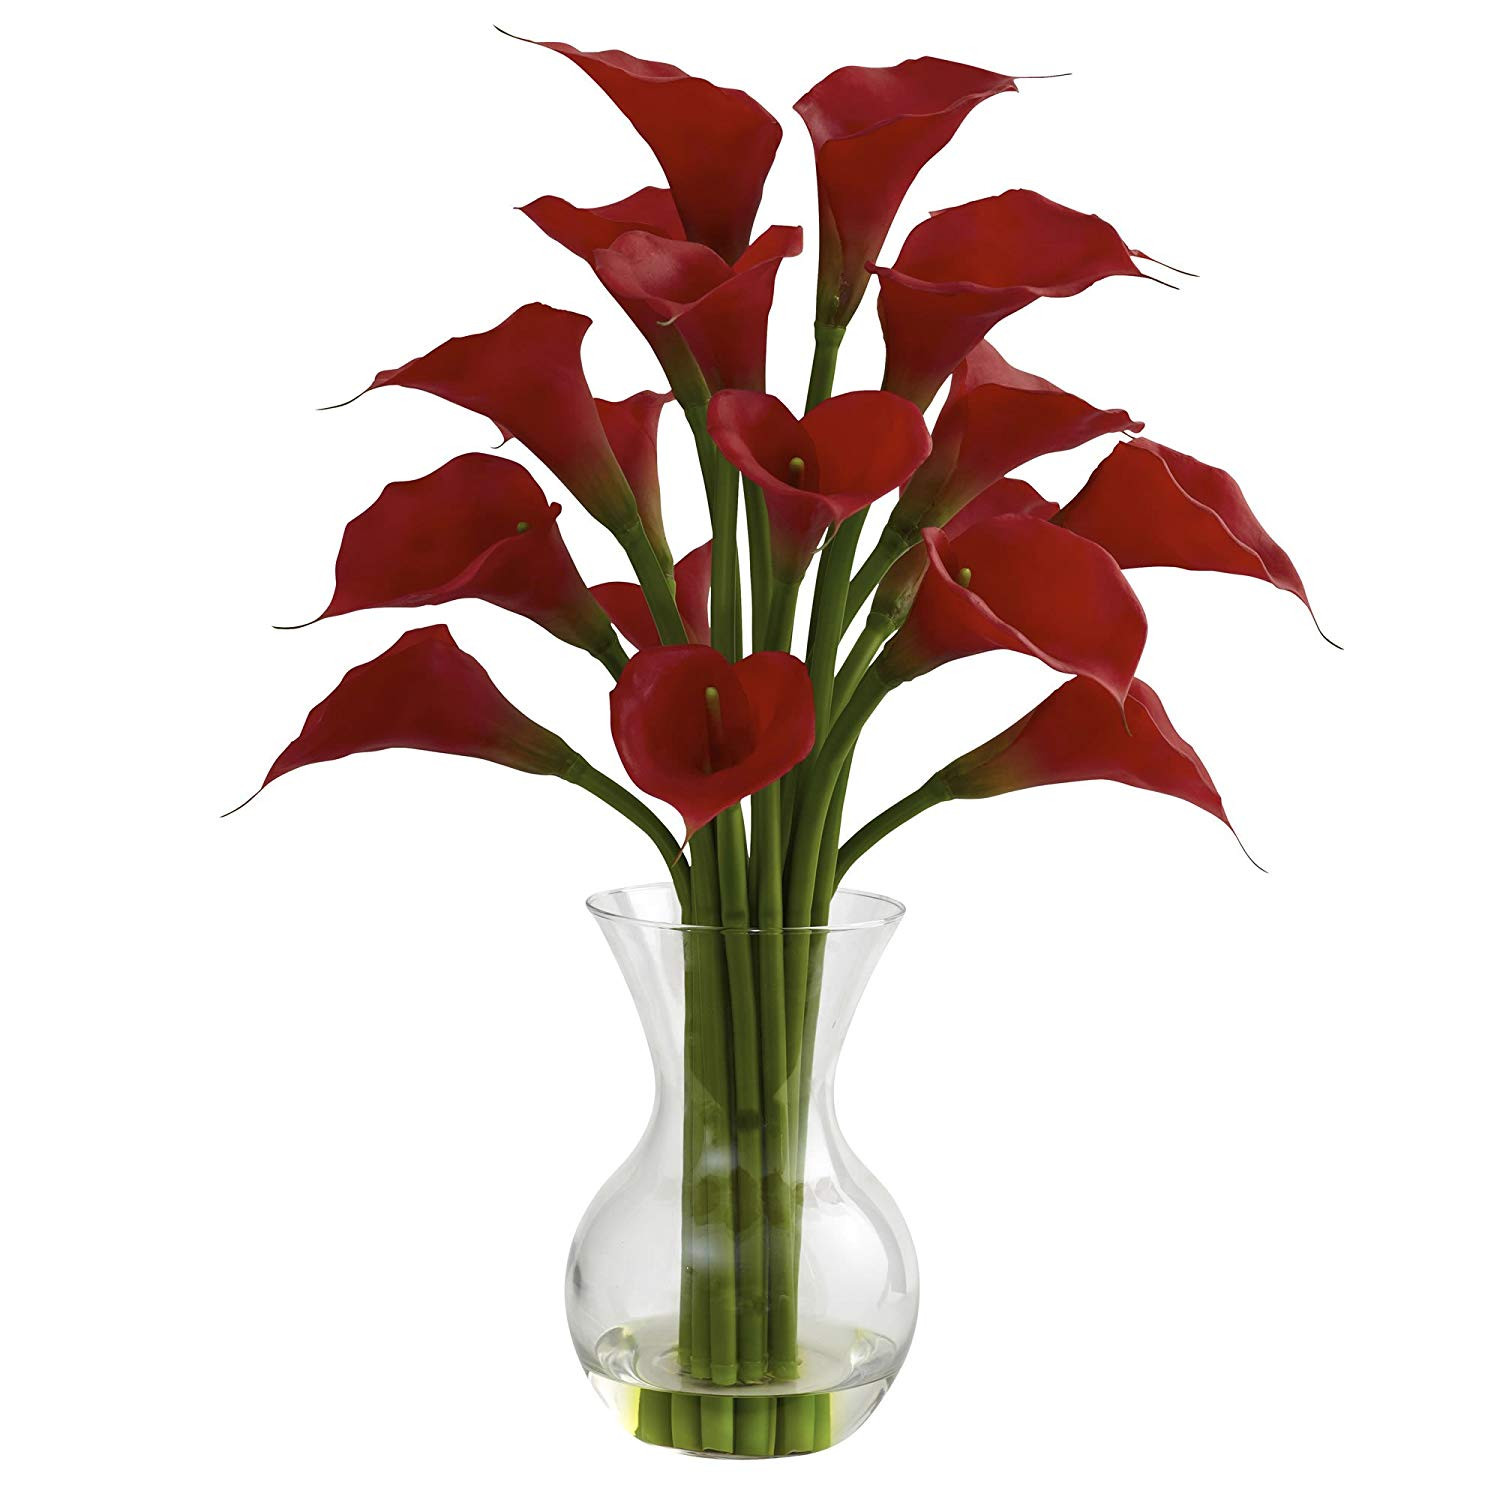 white calla lilies in vase of amazon com nearly natural 1299 cr galla calla lily with vase pertaining to amazon com nearly natural 1299 cr galla calla lily with vase arrangement cream home kitchen